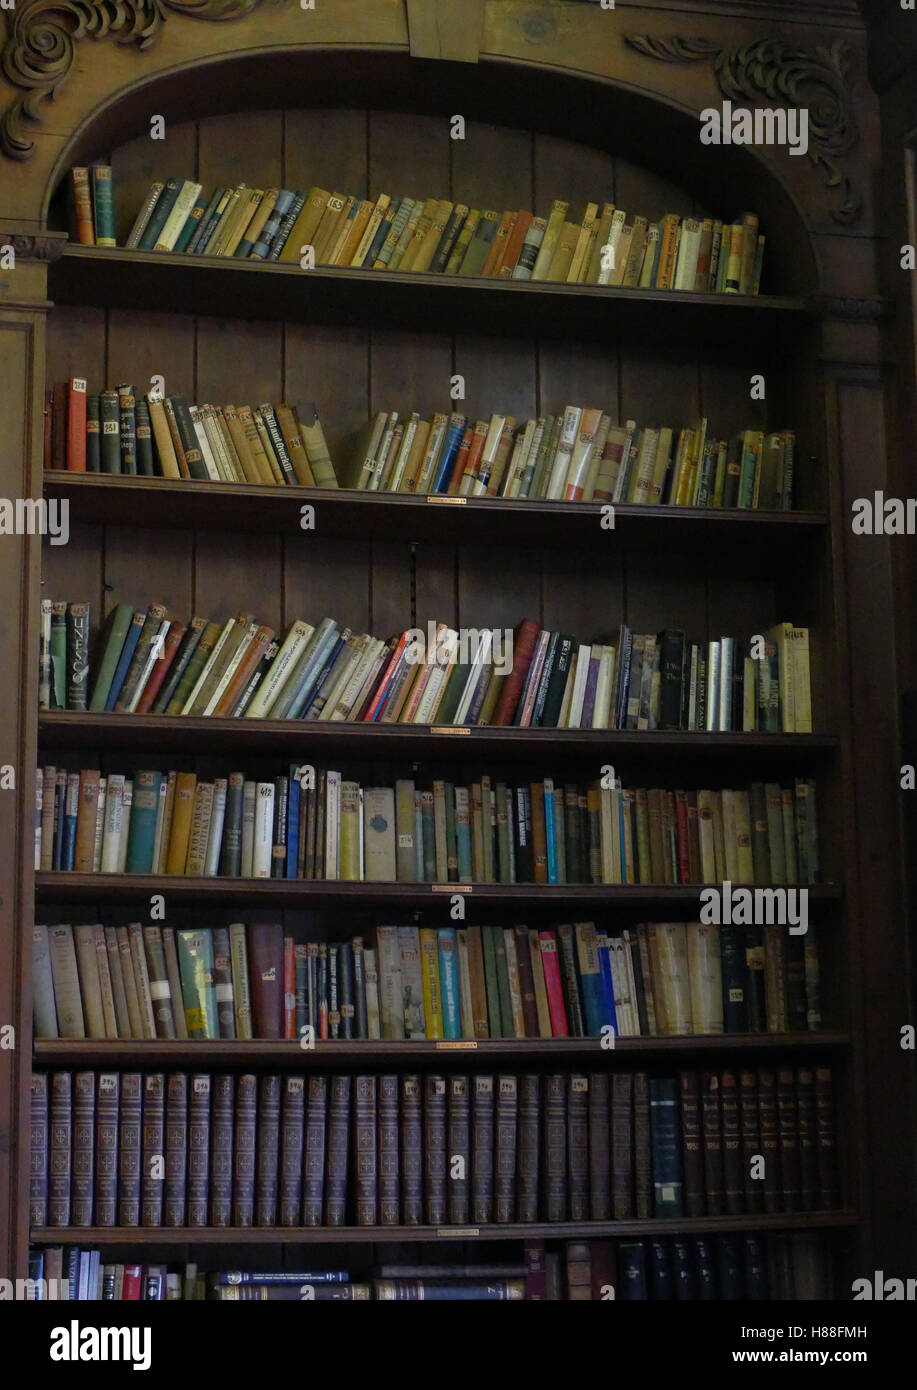 Wooden book shelves with old library books - Stock Image